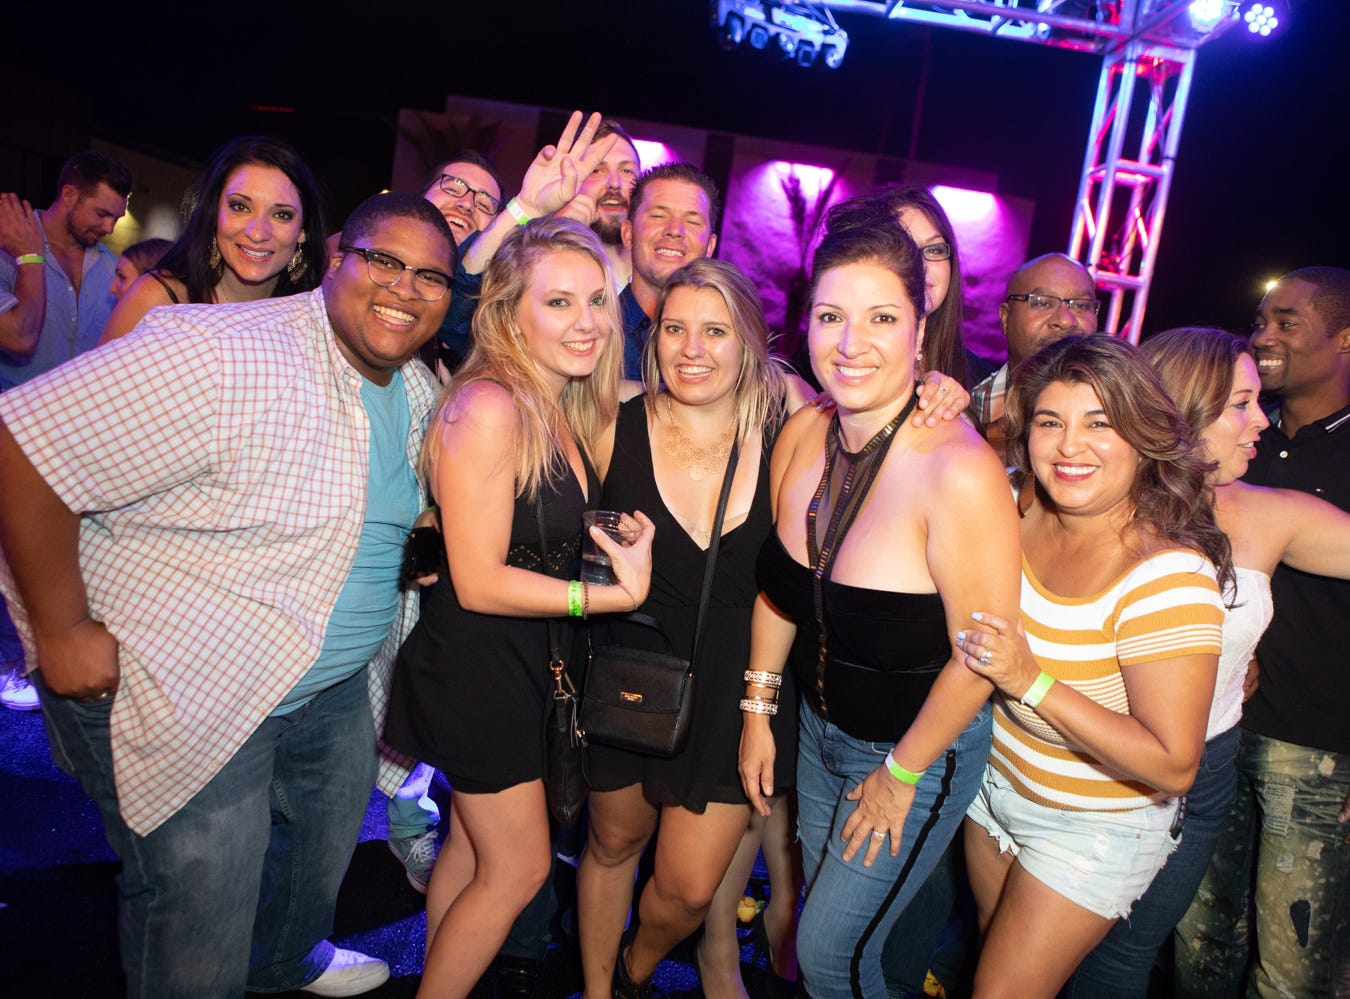 DJ Pauly D packed Hi-Fi as he played tracks that kept the dance floor moving on Saturday, Sept. 1, 2018 in Scottsdale.